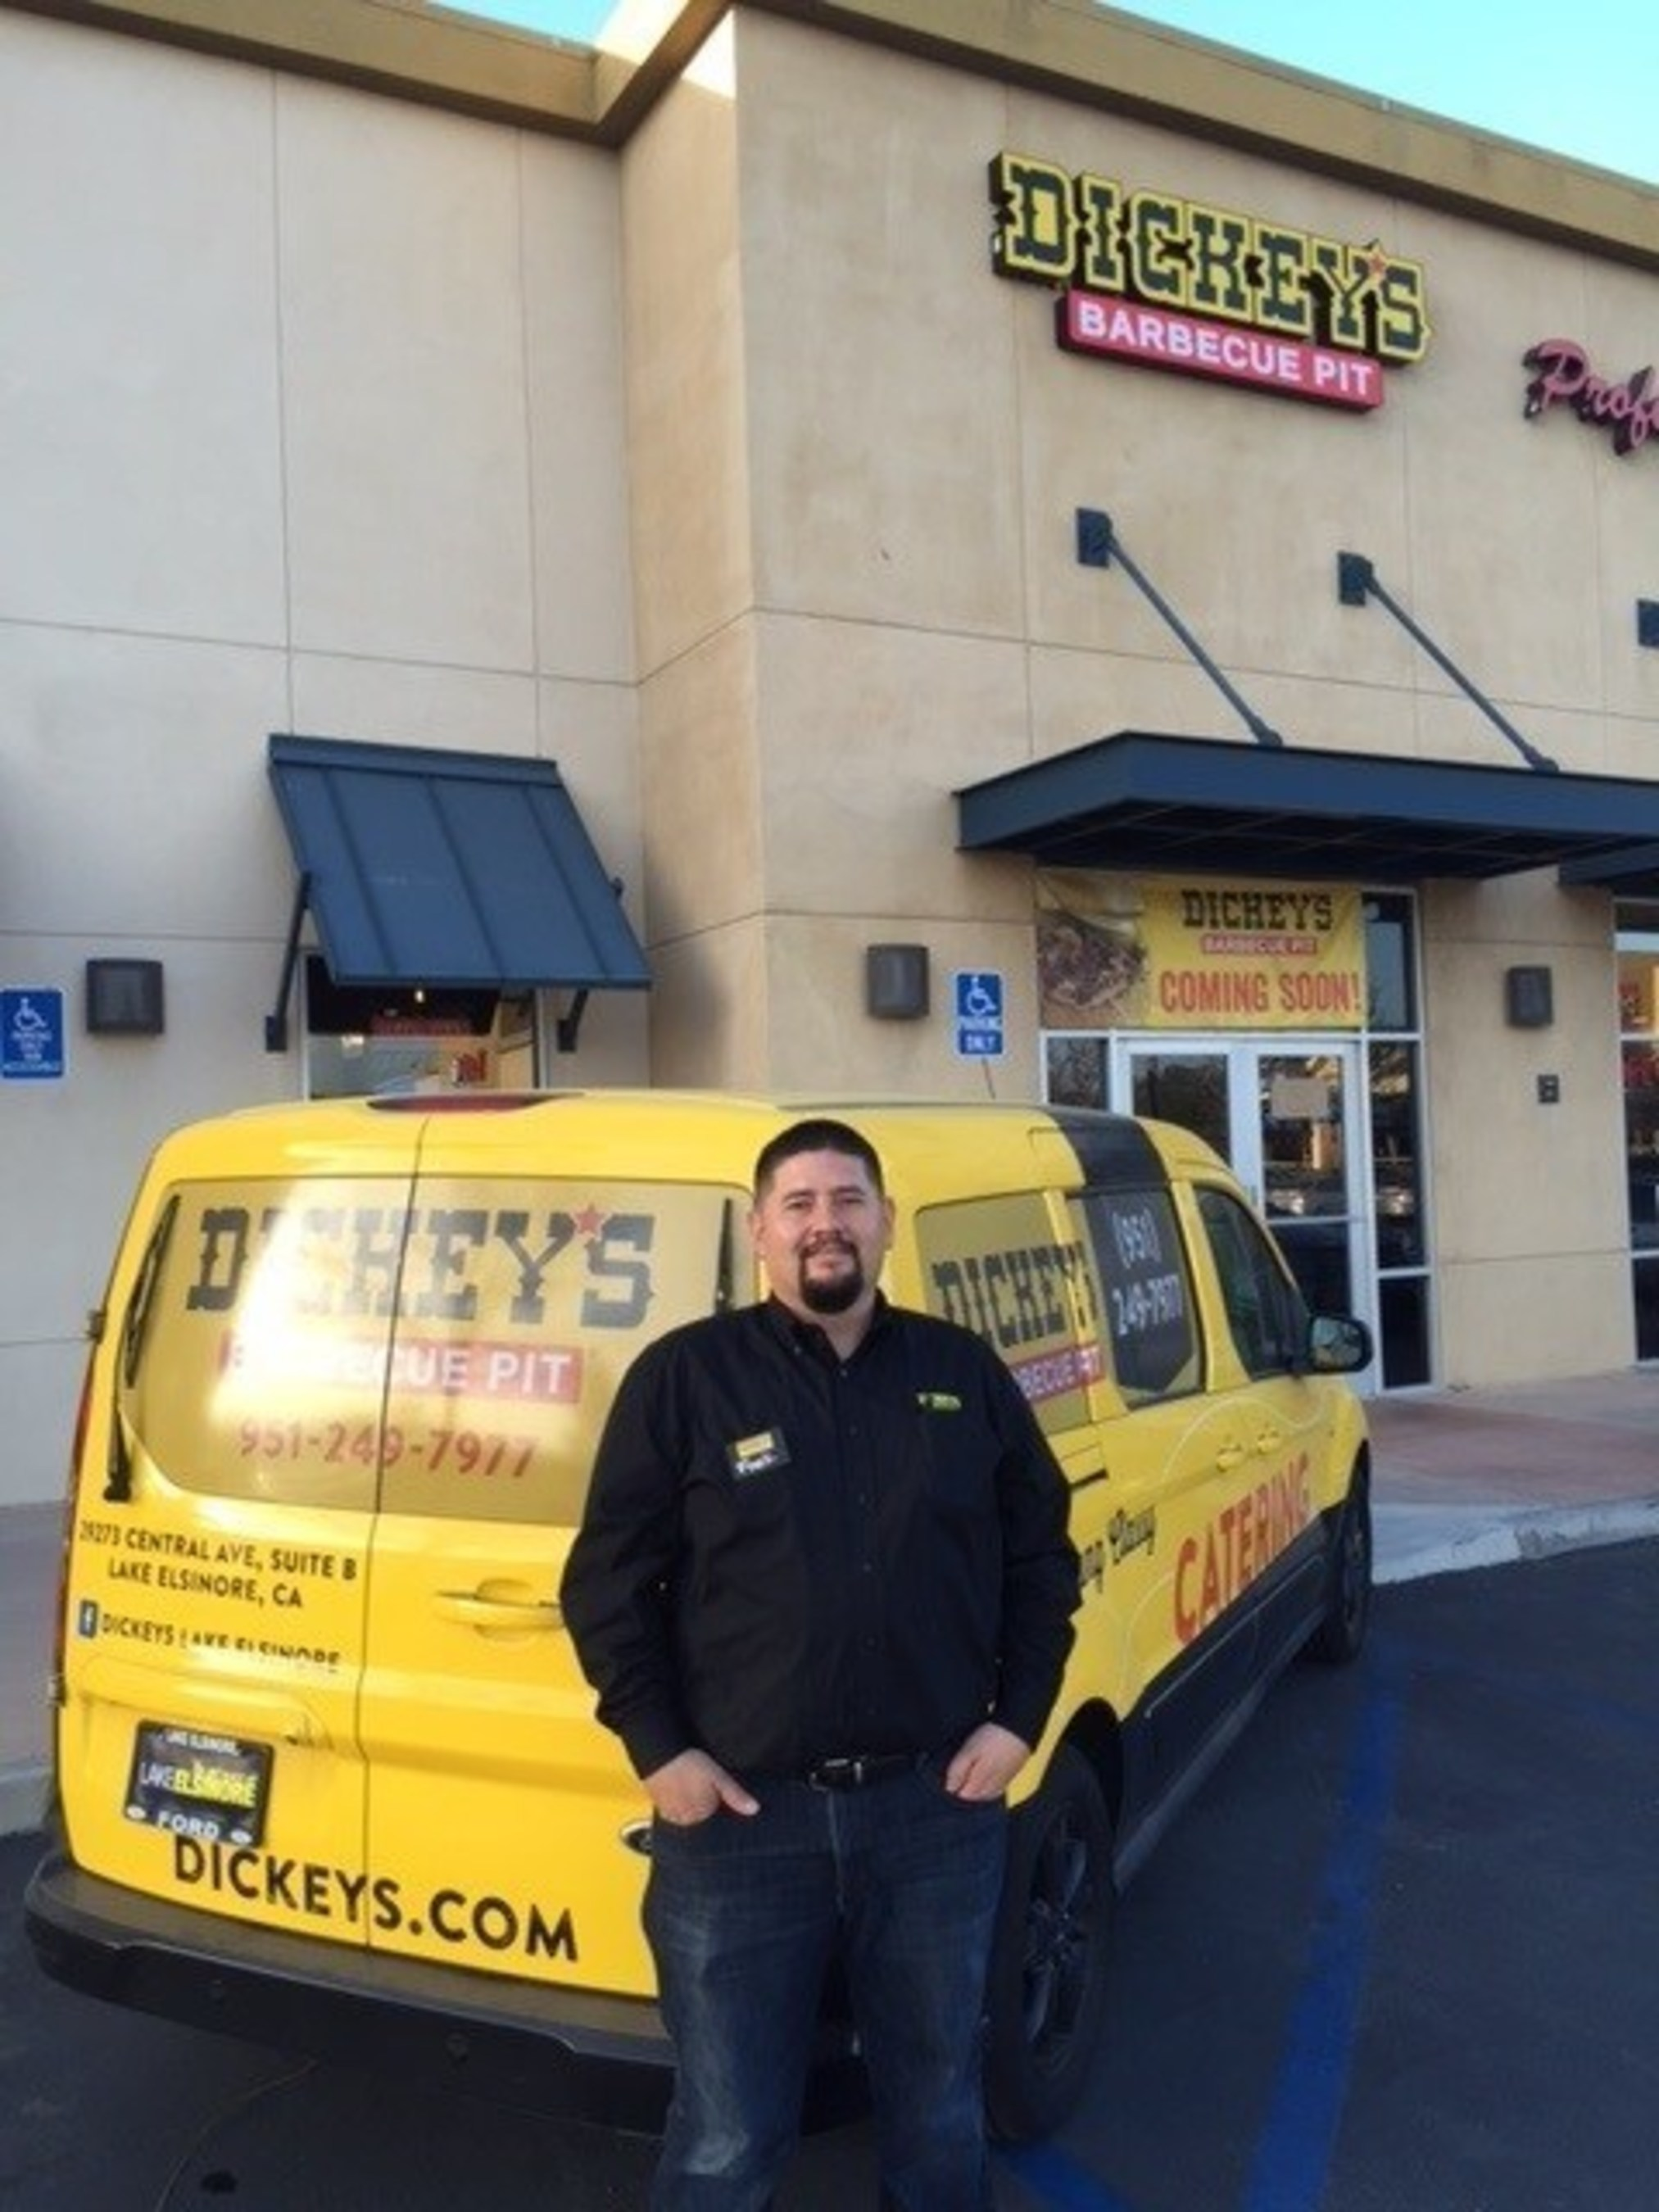 Dickey's Barbecue Pit Owner/Operator Frank Morones opens the doors on Thursday with three days of specials and giveaways